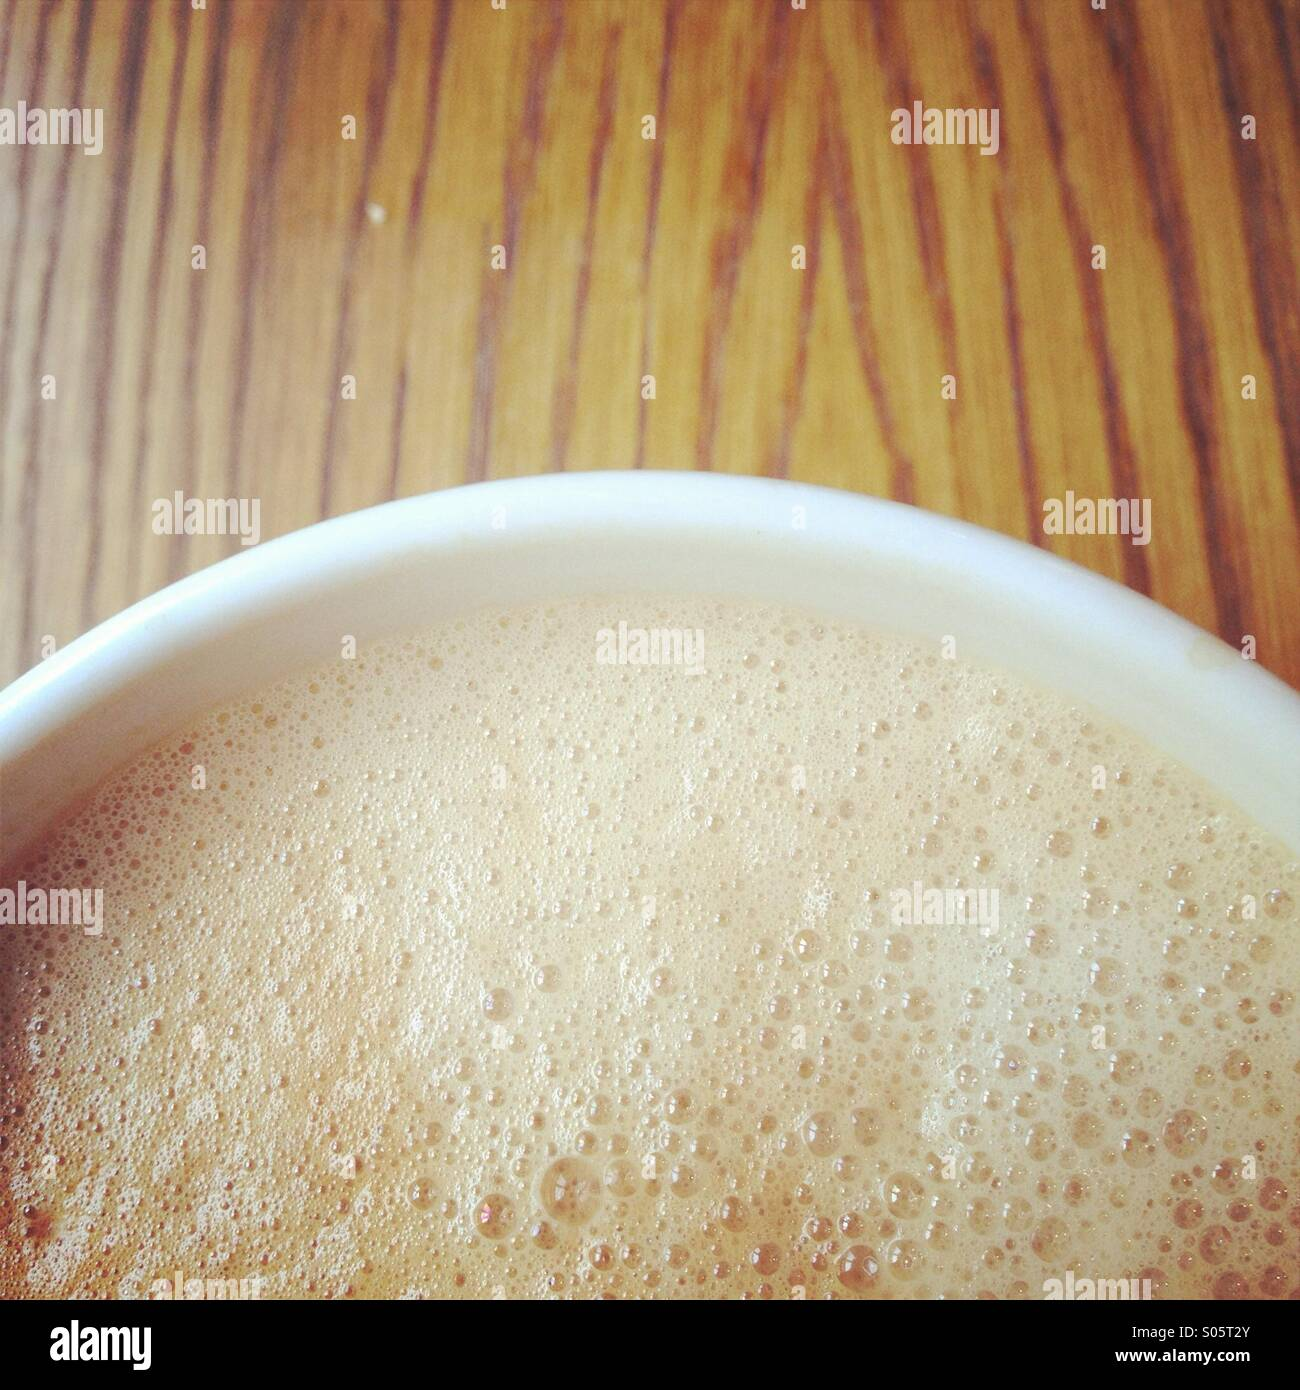 Cup of cappuccino coffee drink detail - Stock Image